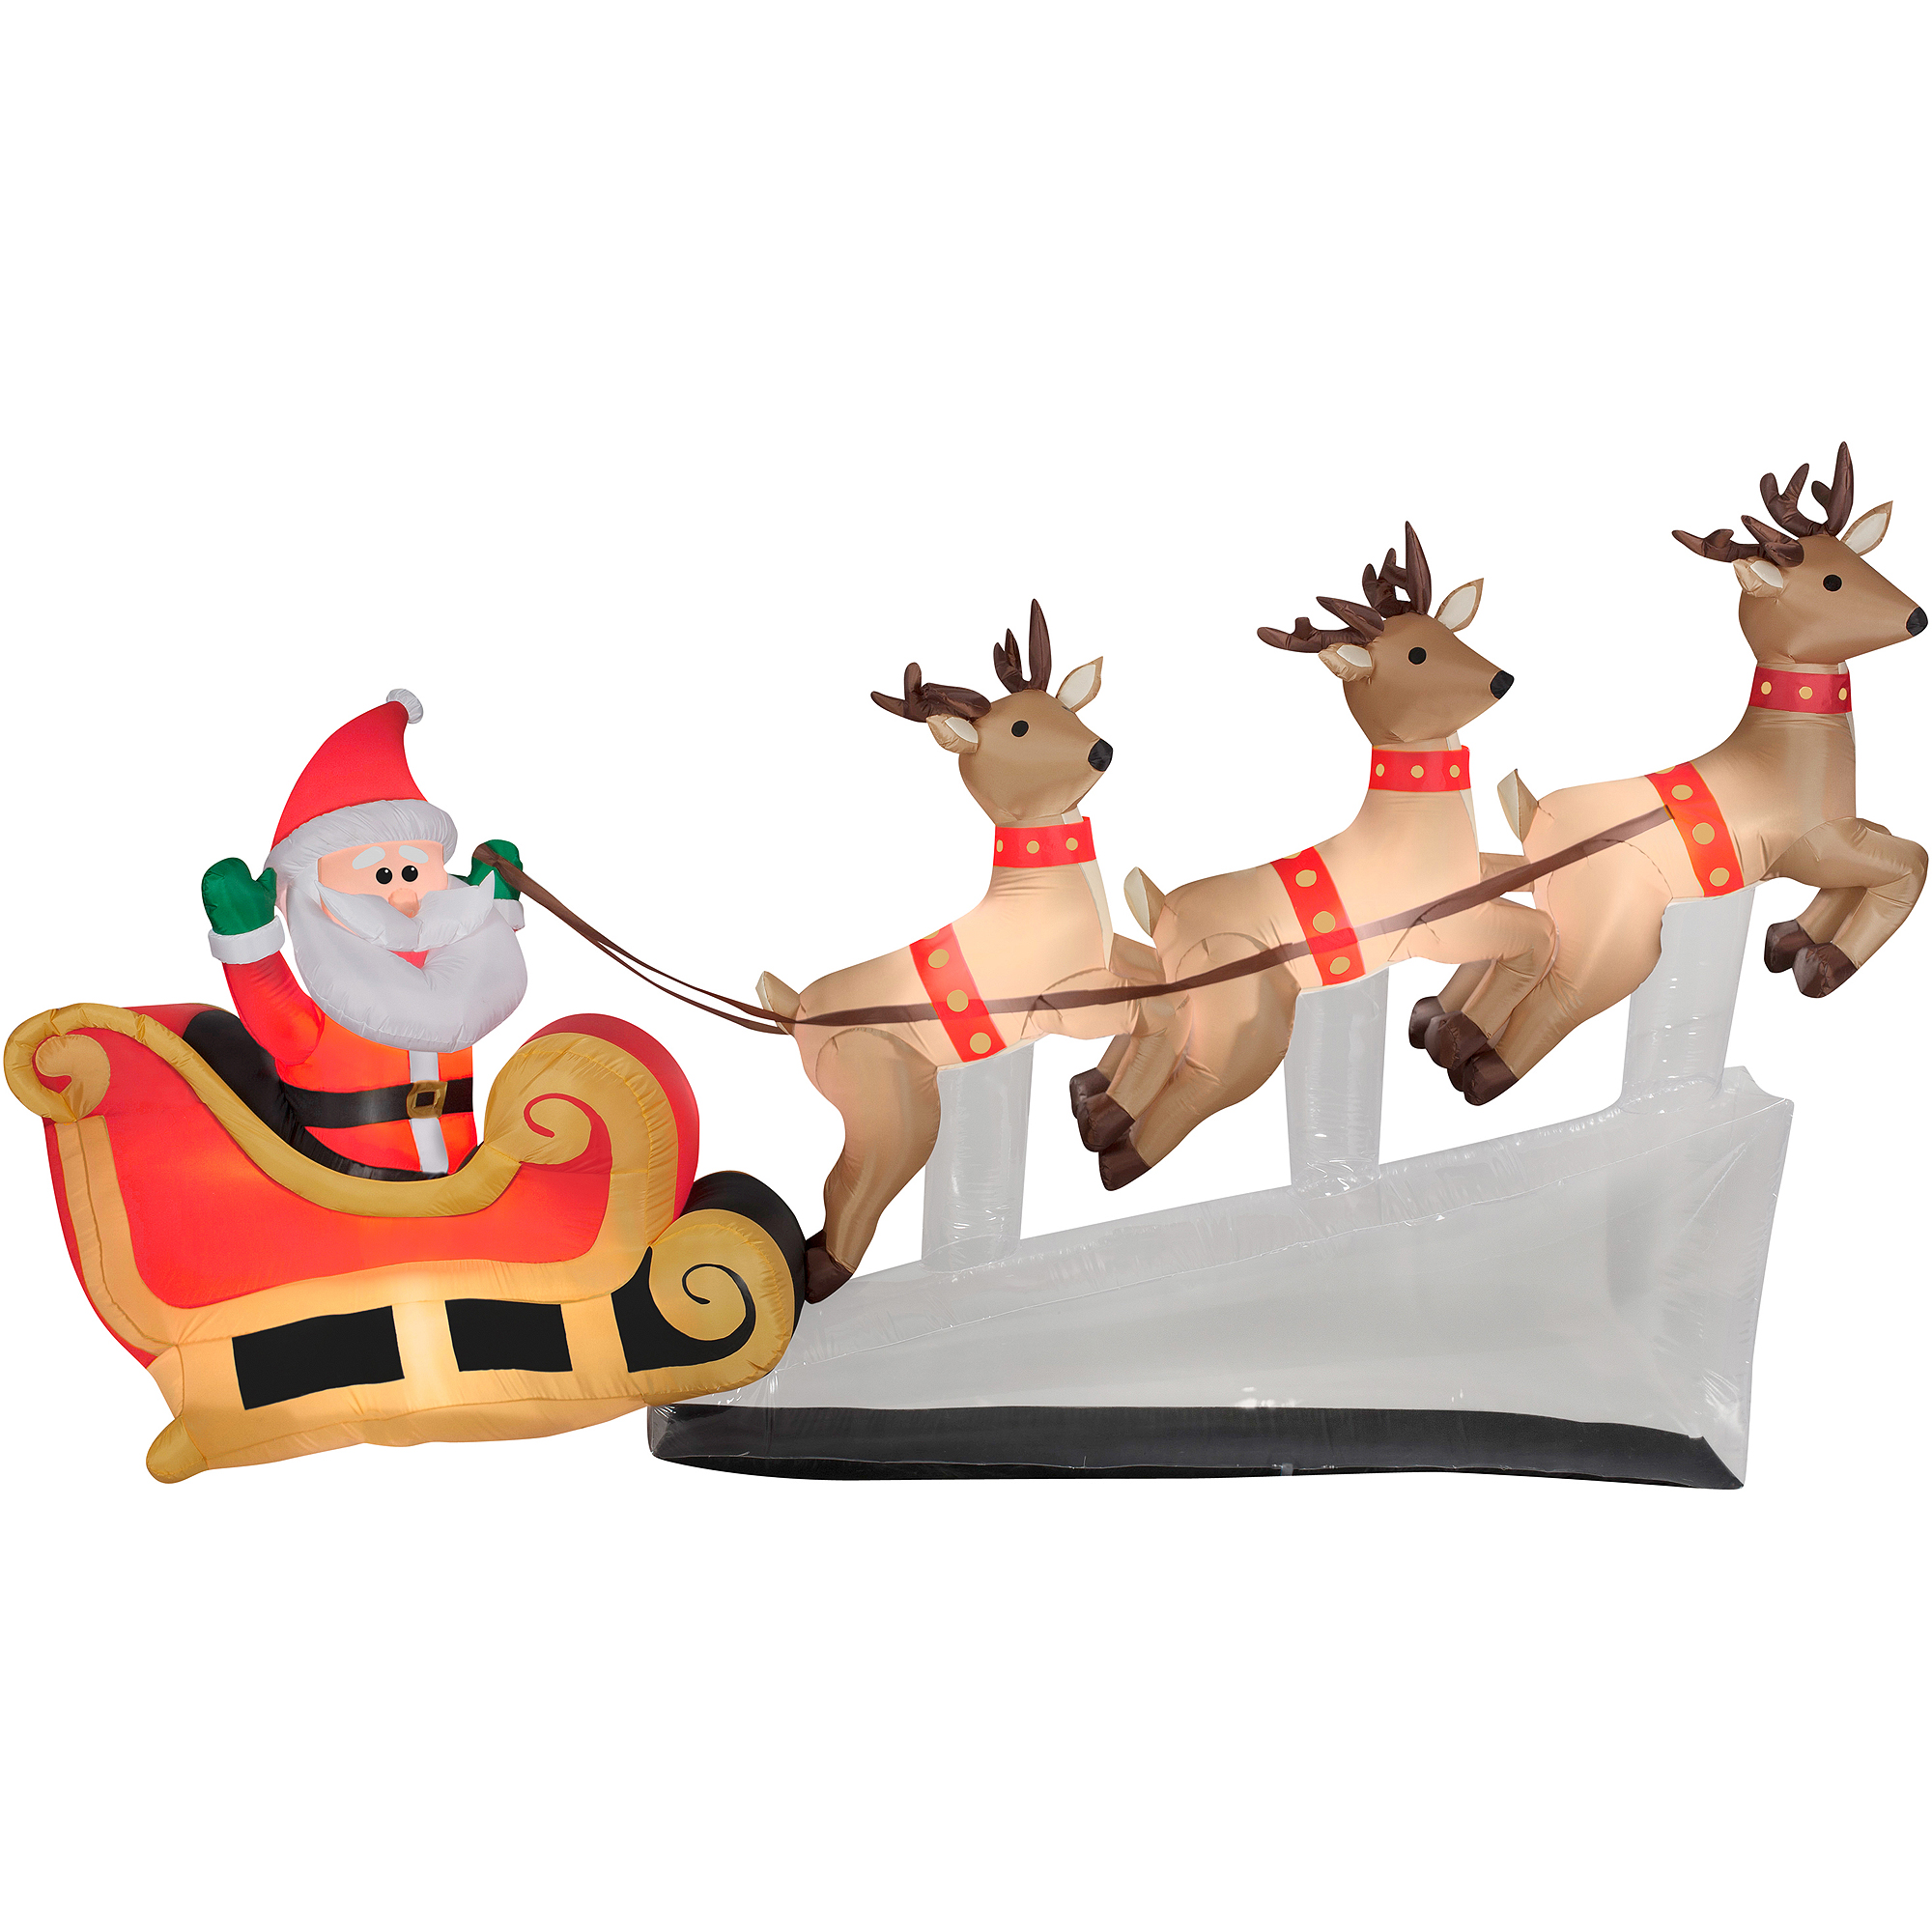 Home Depot Christmas Lawn Decorations Santa With Reindeer Clipart Best